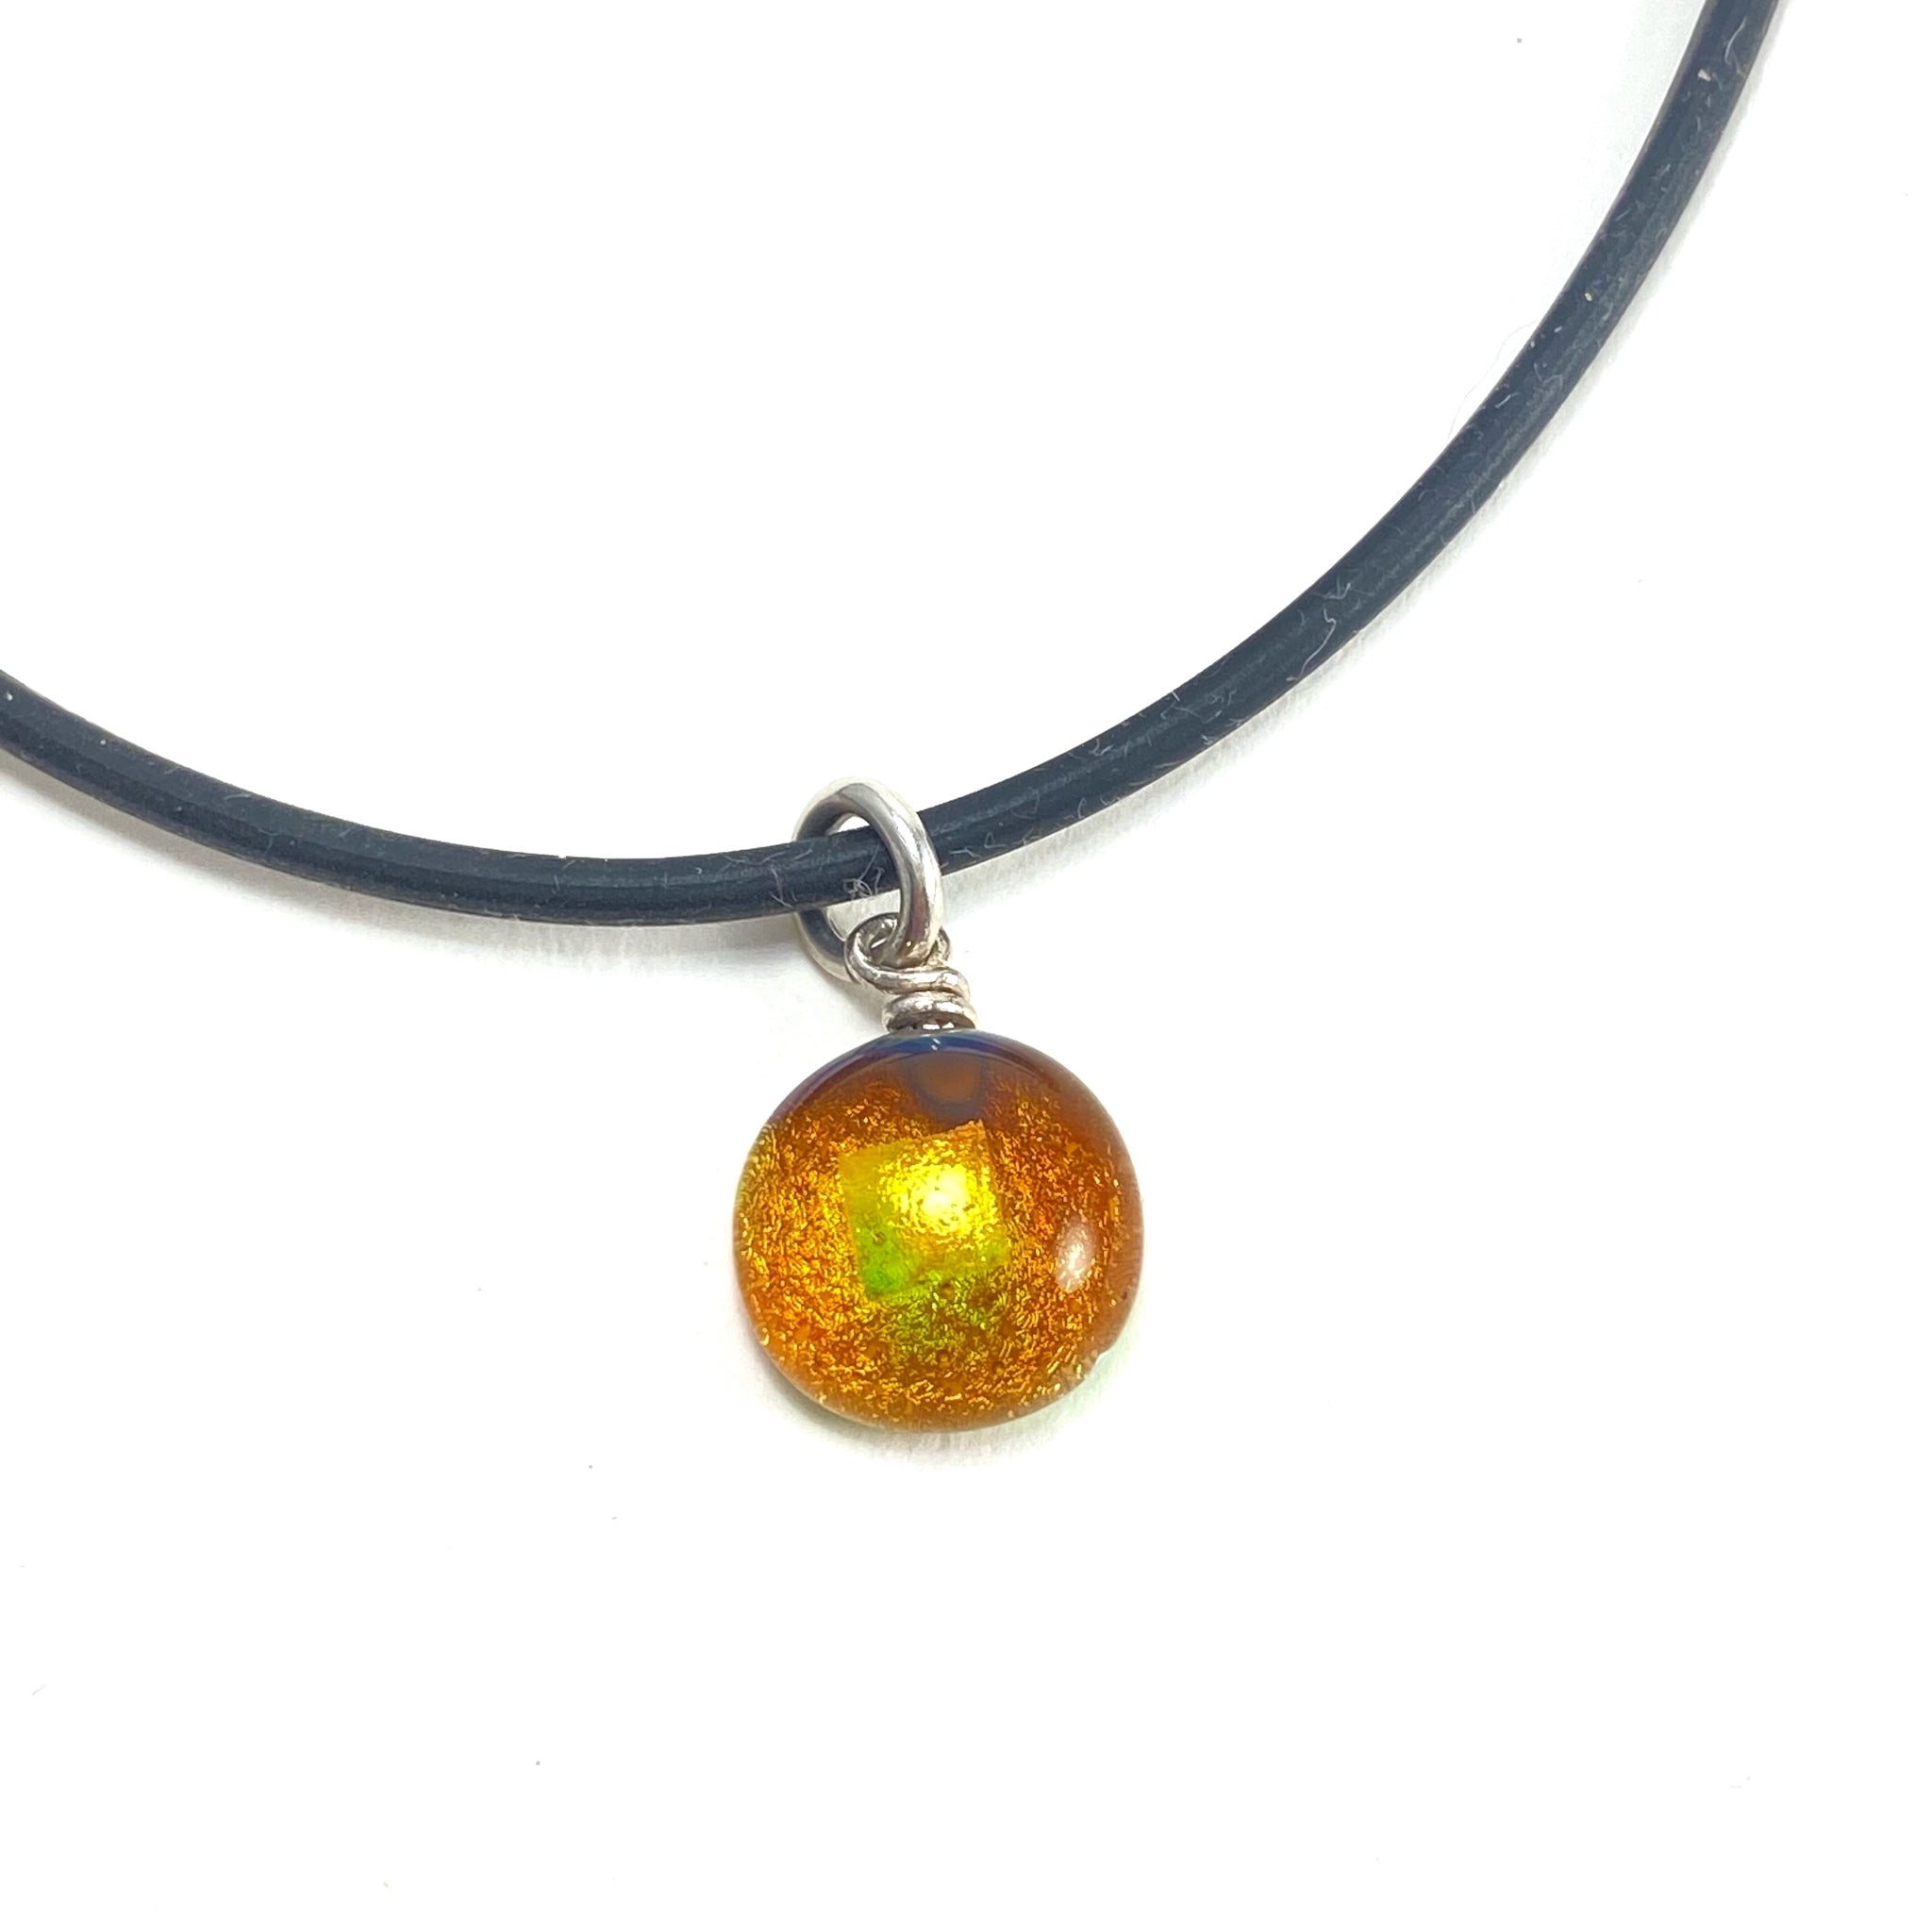 amber gold glass ball necklace, fused glass, glass jewelry, glass and silver jewelry, handmade, handcrafted, American Craft, hand fabricated jewelry, hand fabricated jewellery,  Athen, Georgia, colorful jewelry, sparkle, bullseye glass, dichroic glass, art jewelry